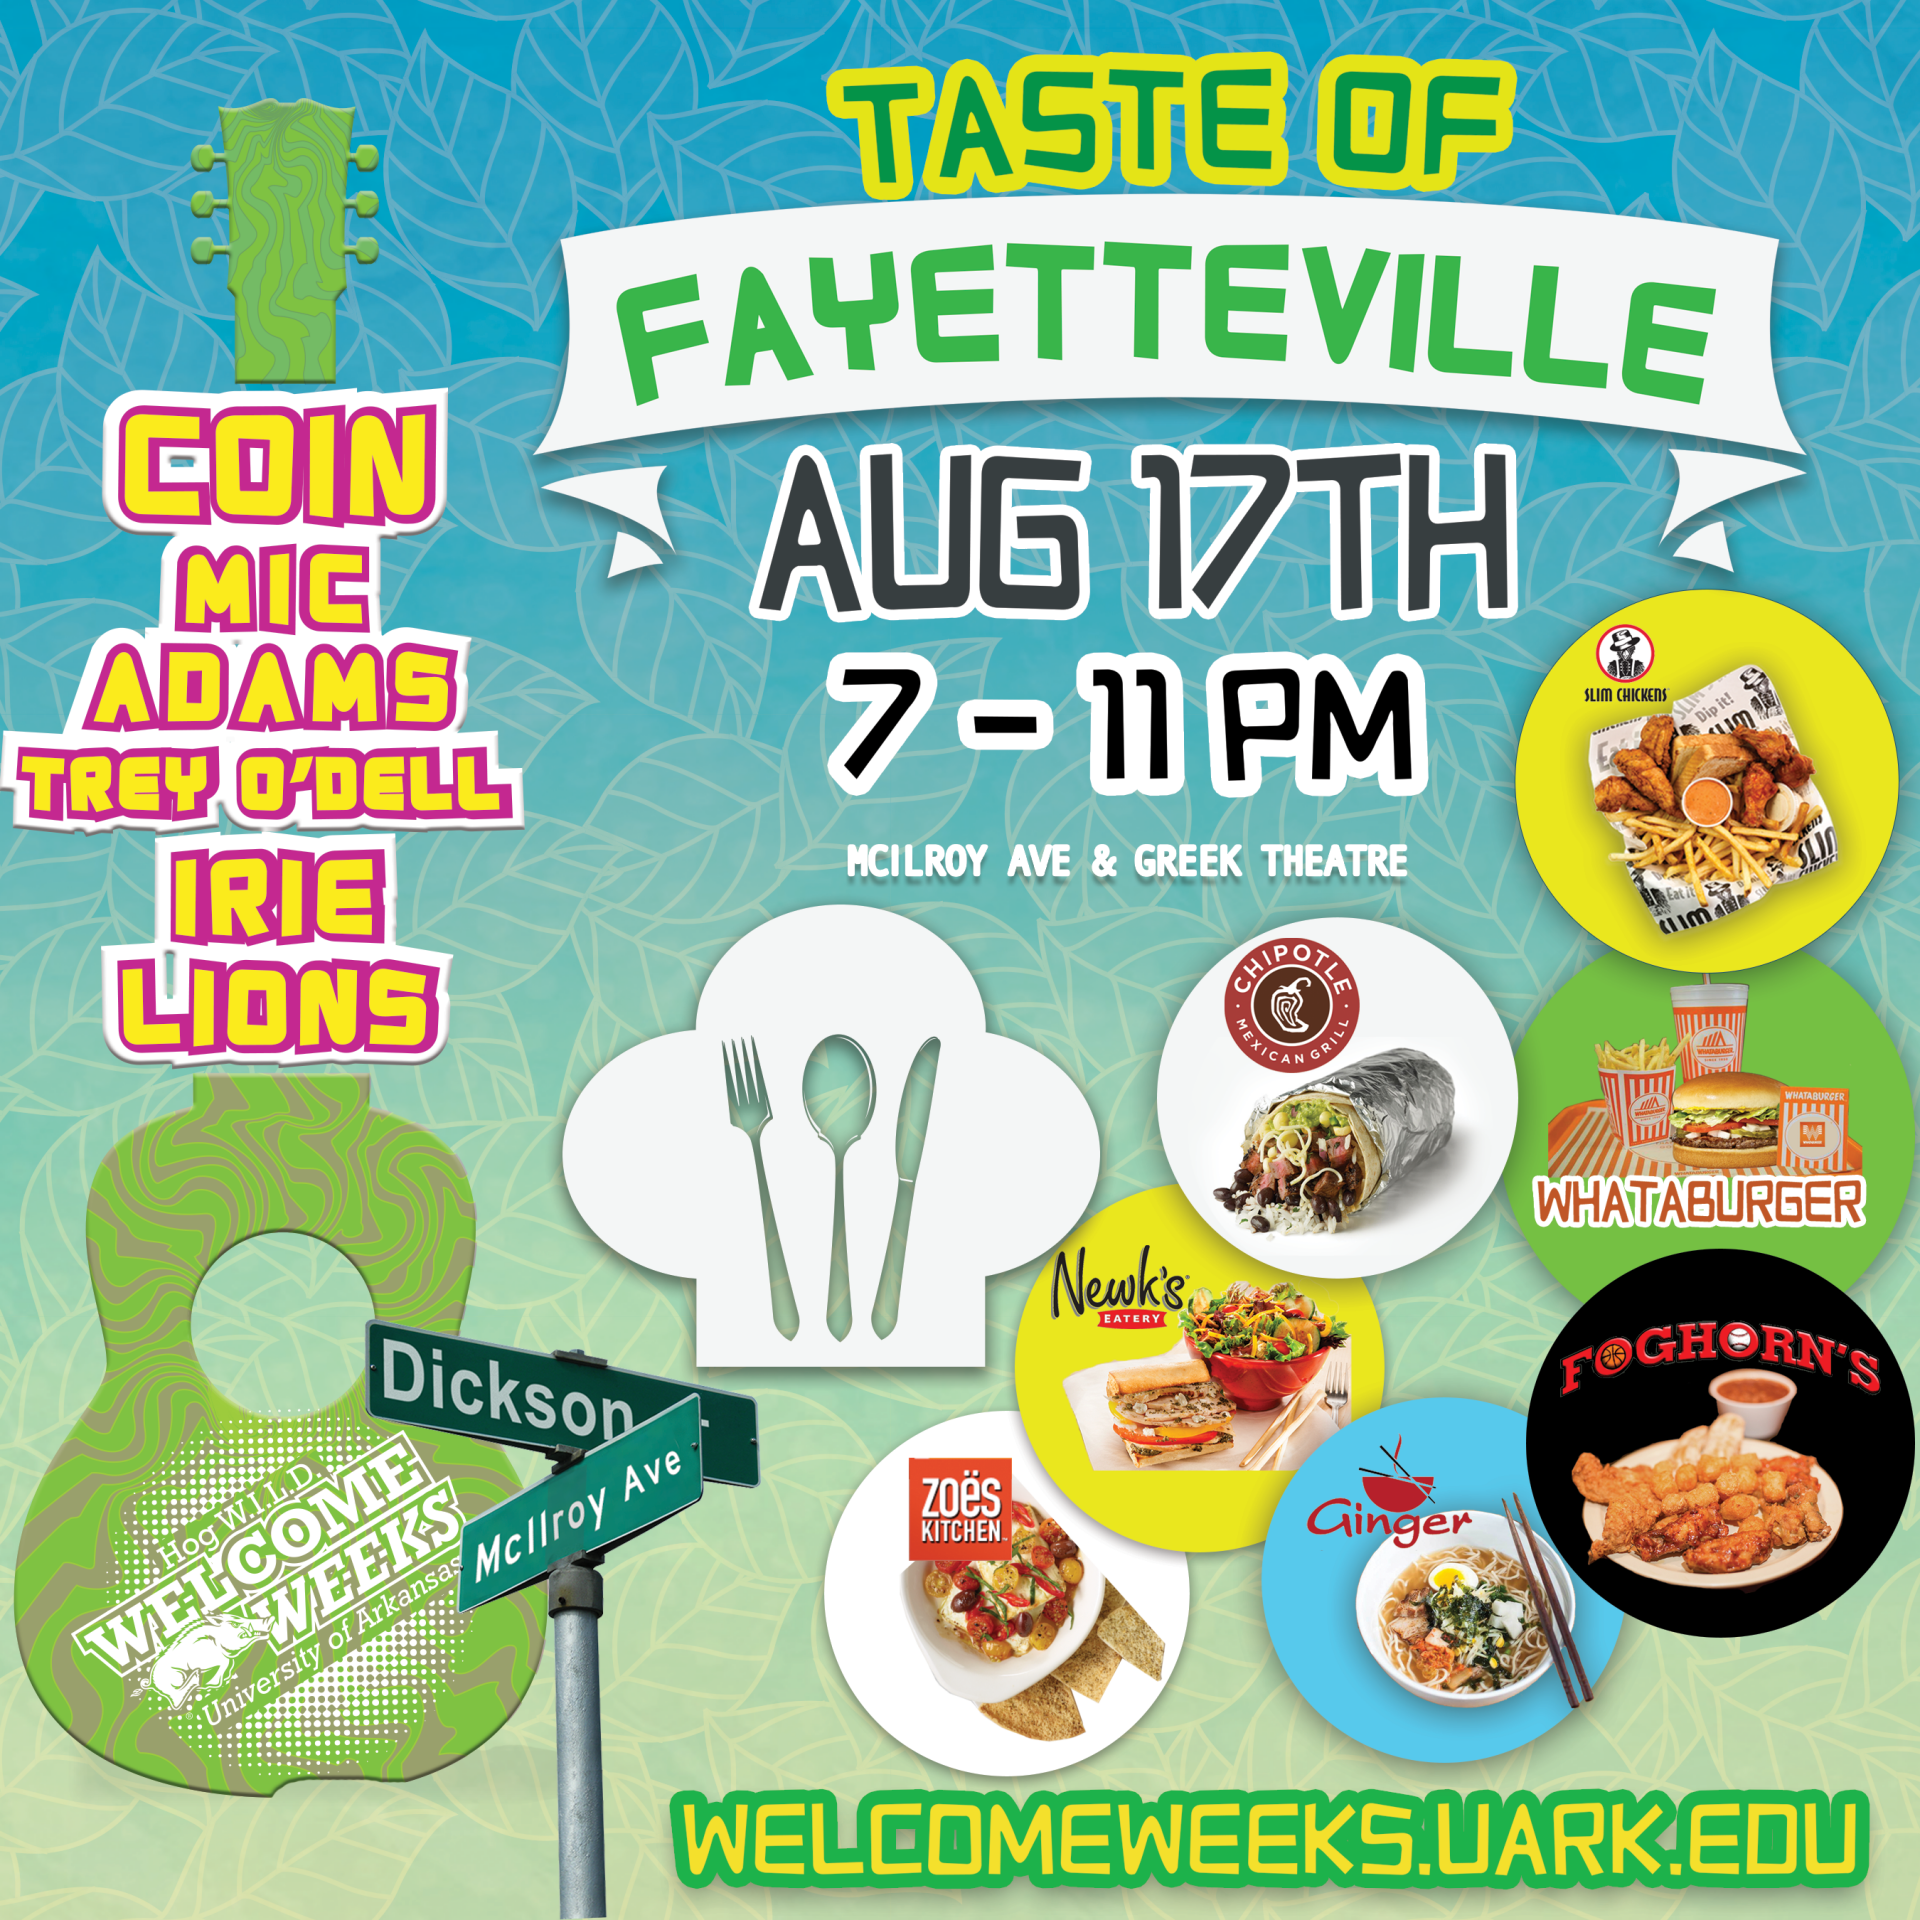 Hungry for Good Times? Check Out the Taste of Fayetteville